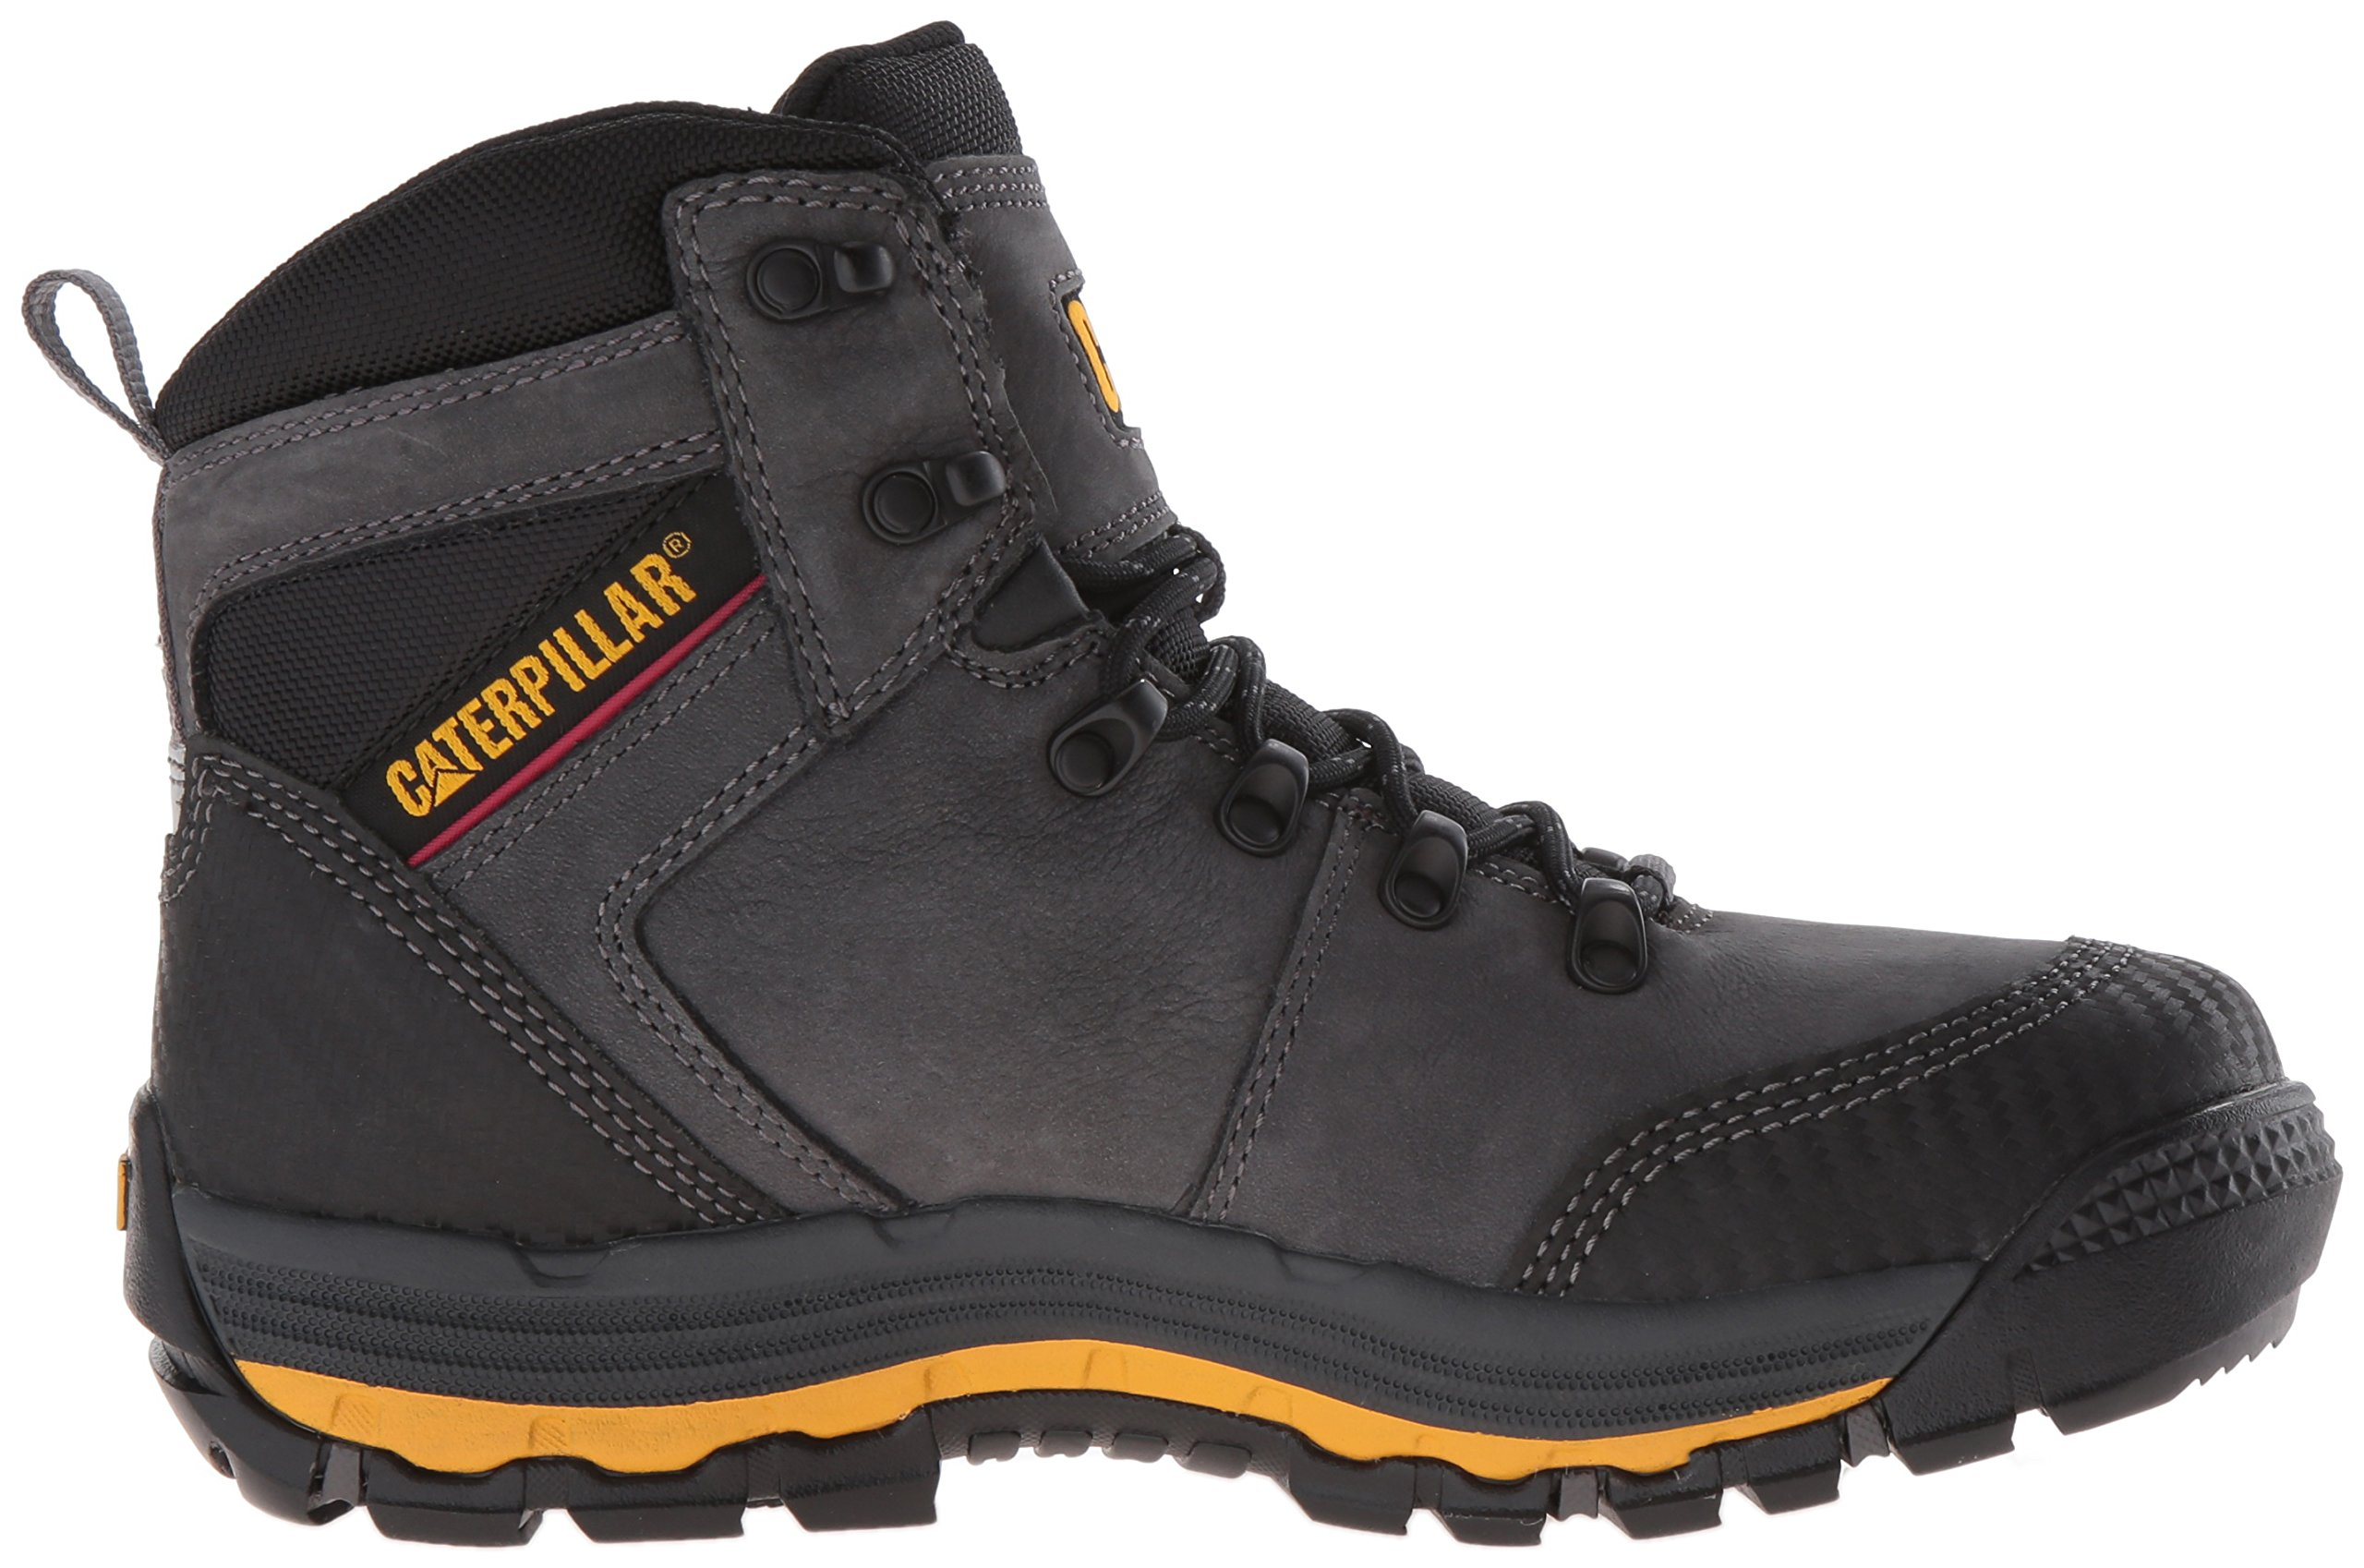 Caterpillar Men's Munising 6'' Waterproof Industrial and Construction Shoe, Dark Shadow, 13 M US by Caterpillar (Image #7)